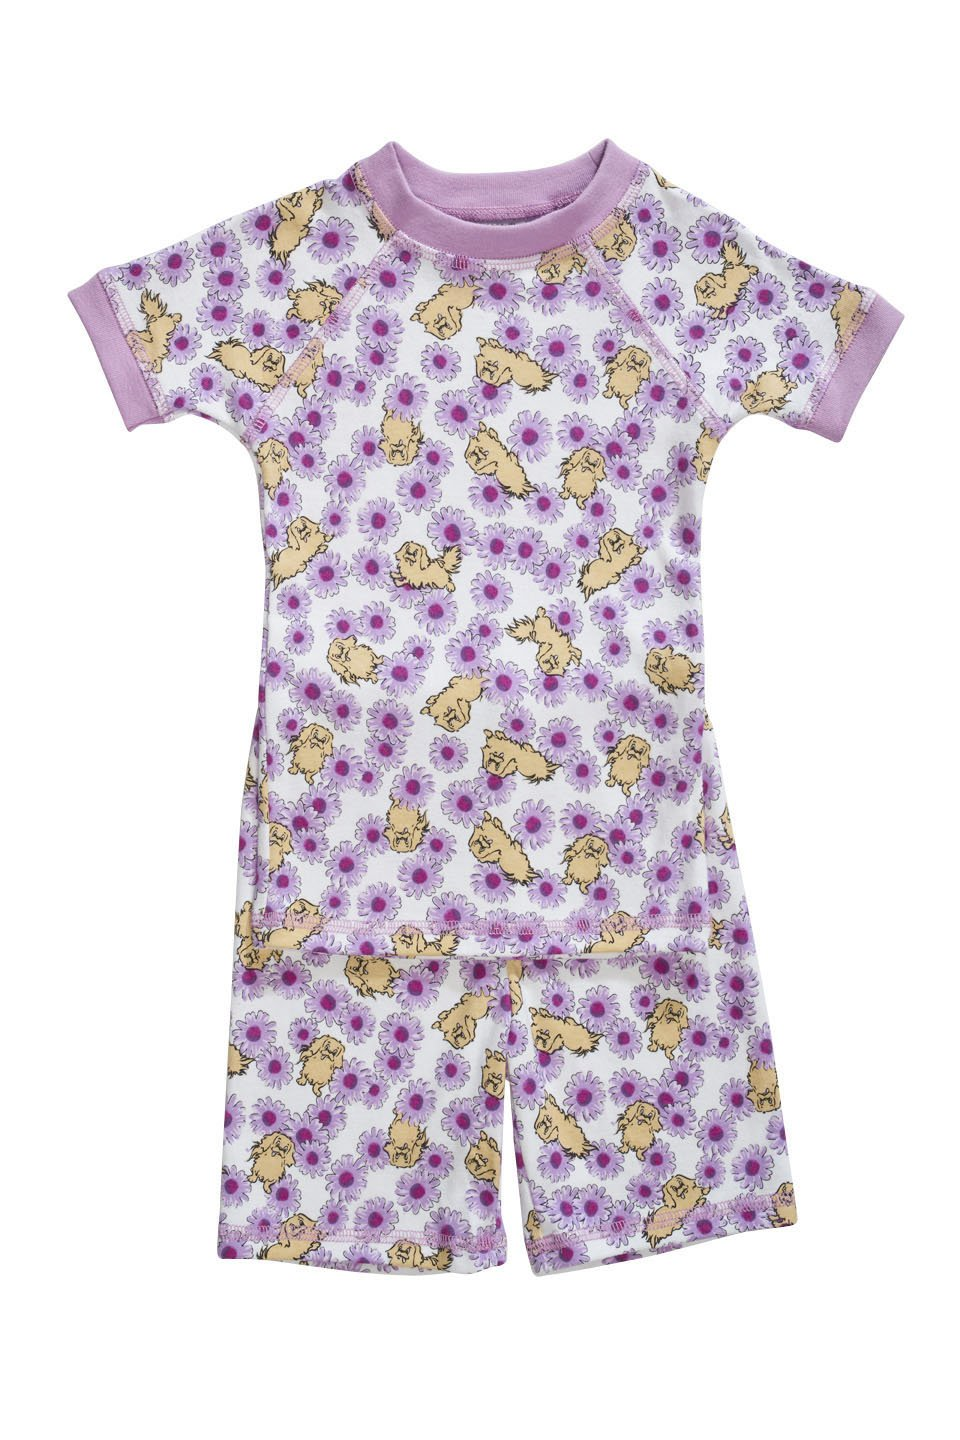 Organic pajamas made in the USA with purple daisies